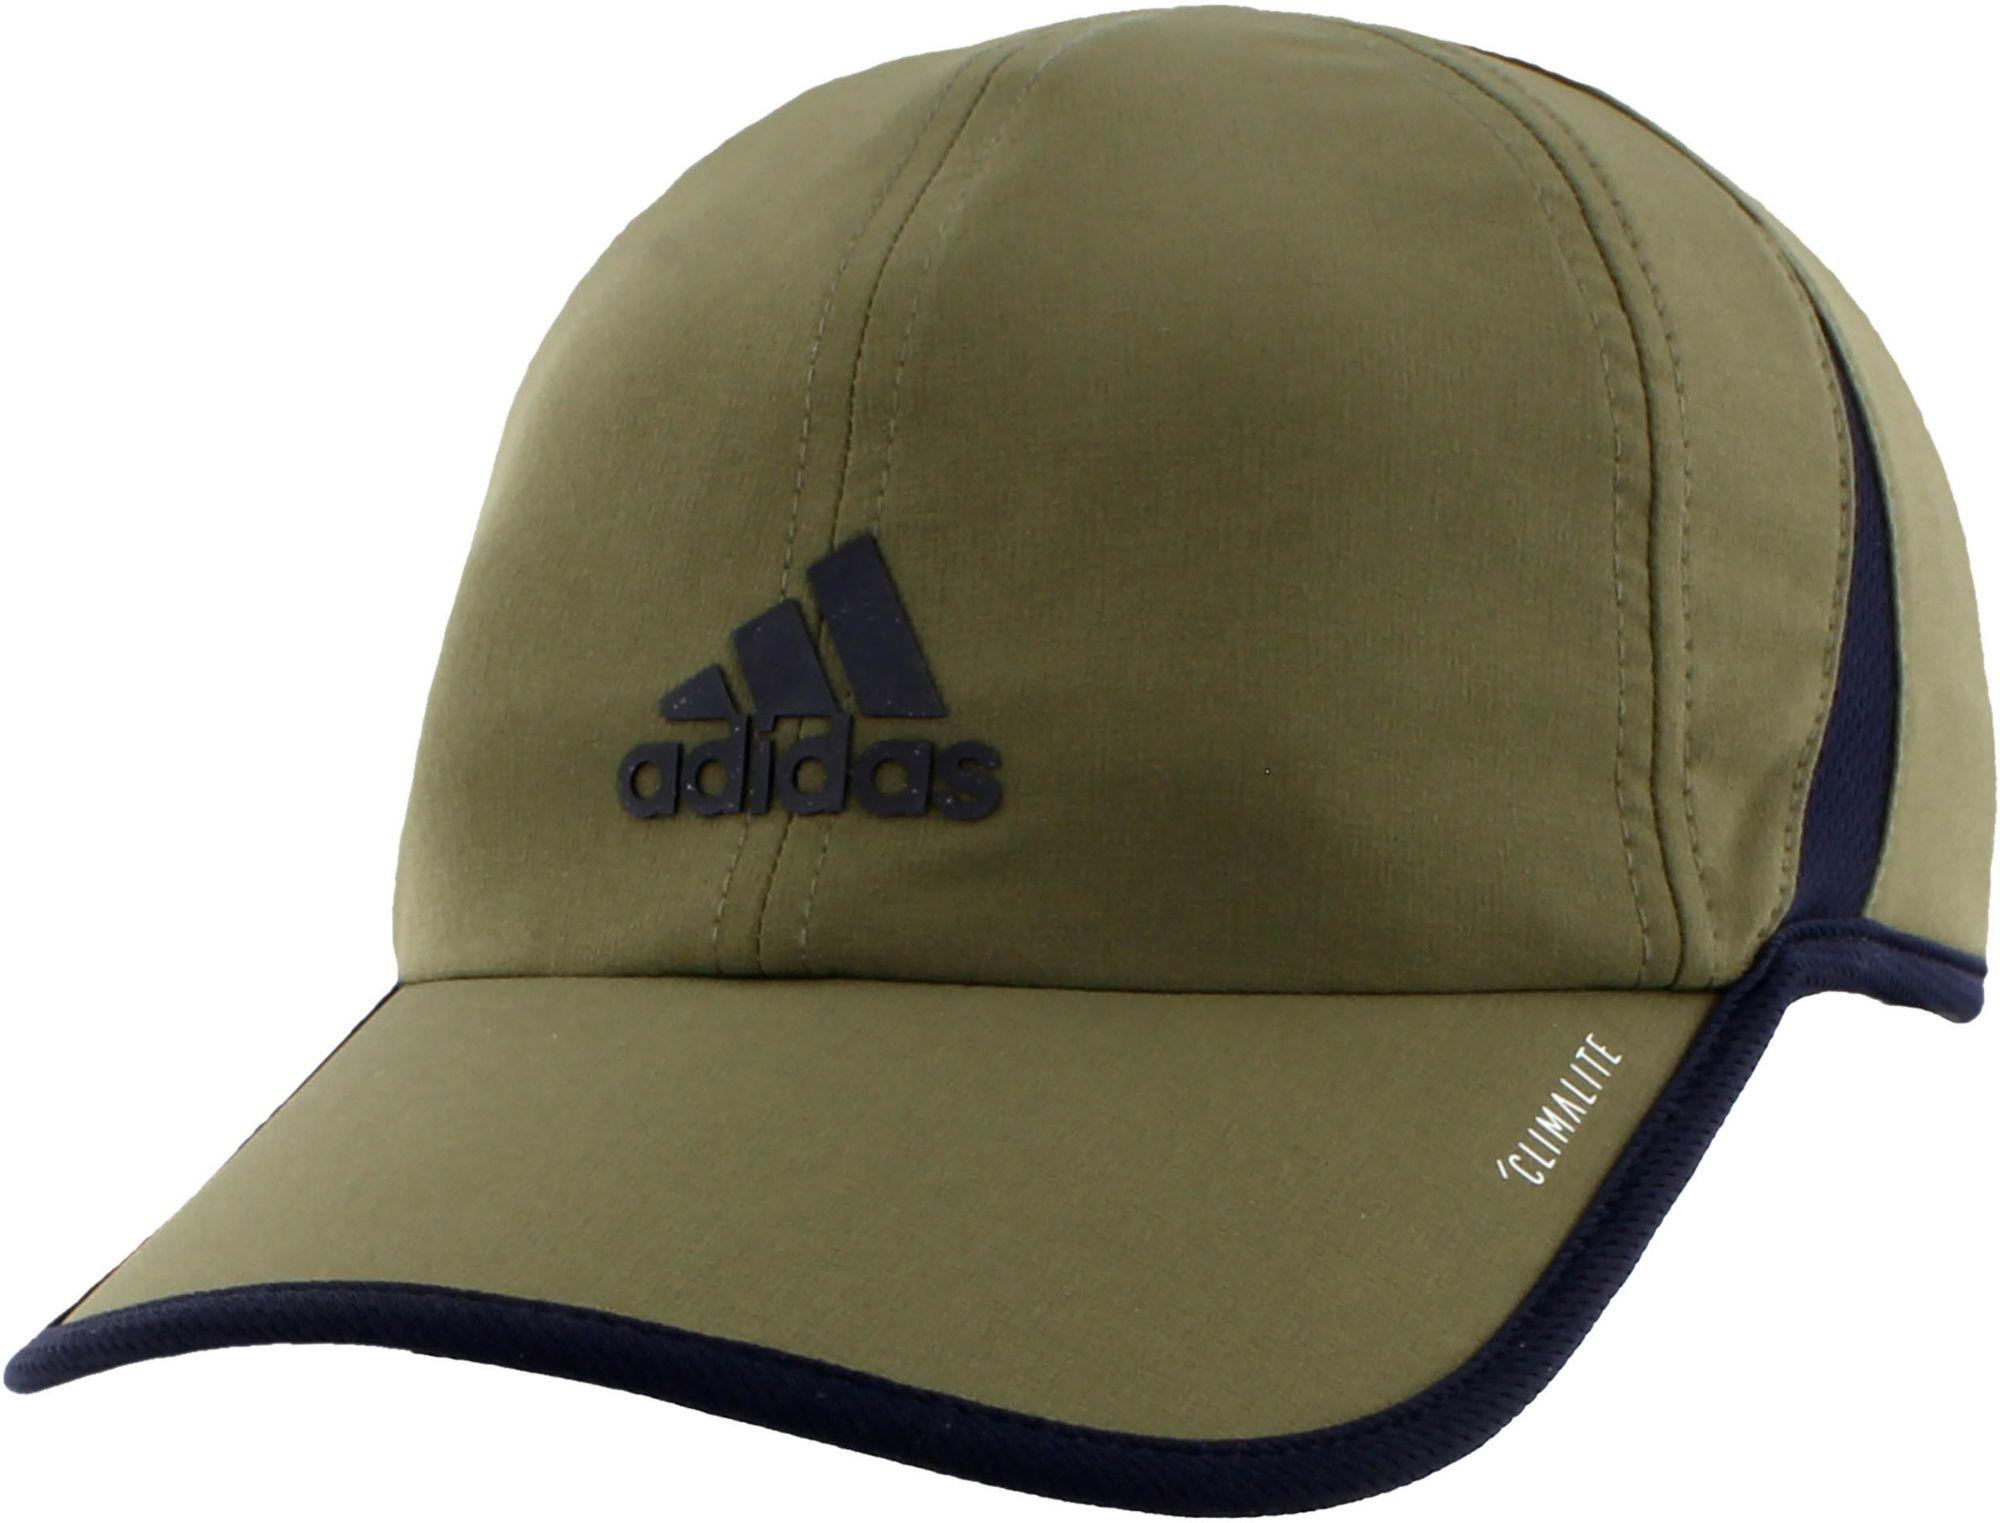 75490d0123b Adidas - Green Superlite Hat for Men - Lyst. View fullscreen